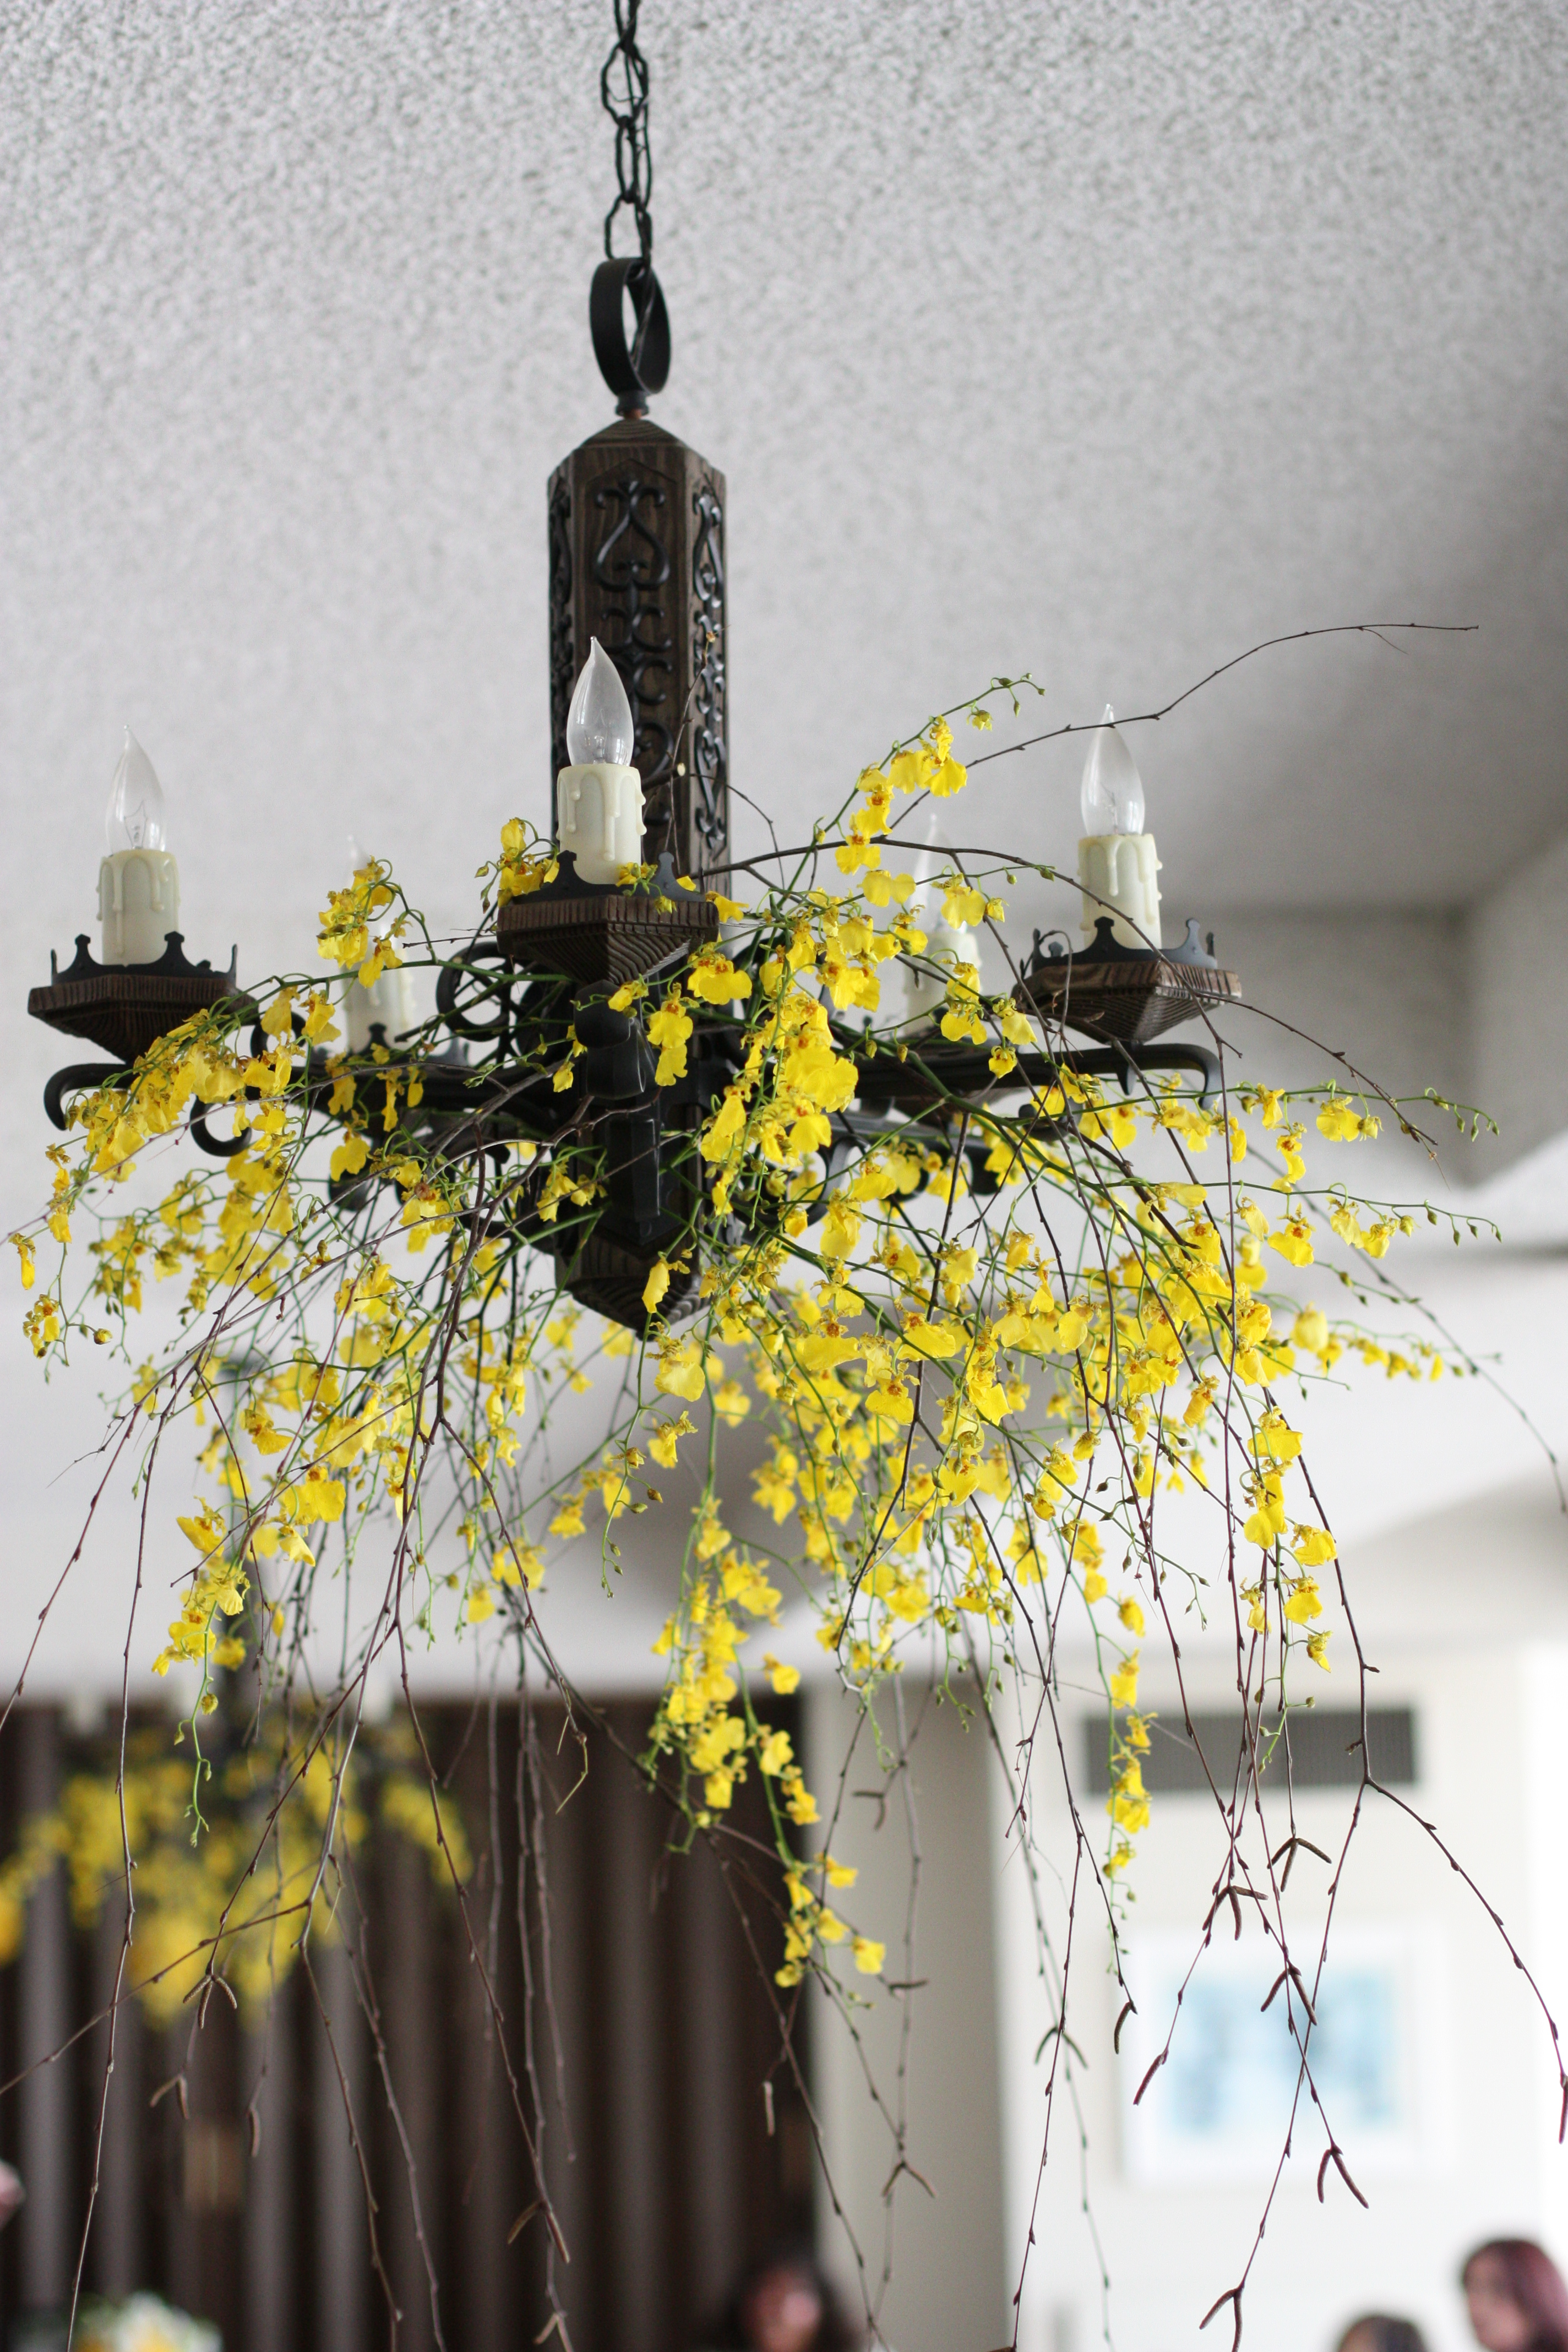 Flowers & Decor, yellow, Flowers, Orchids, Hanging, Gothic, Entwined design, Oncidium, Chandlier